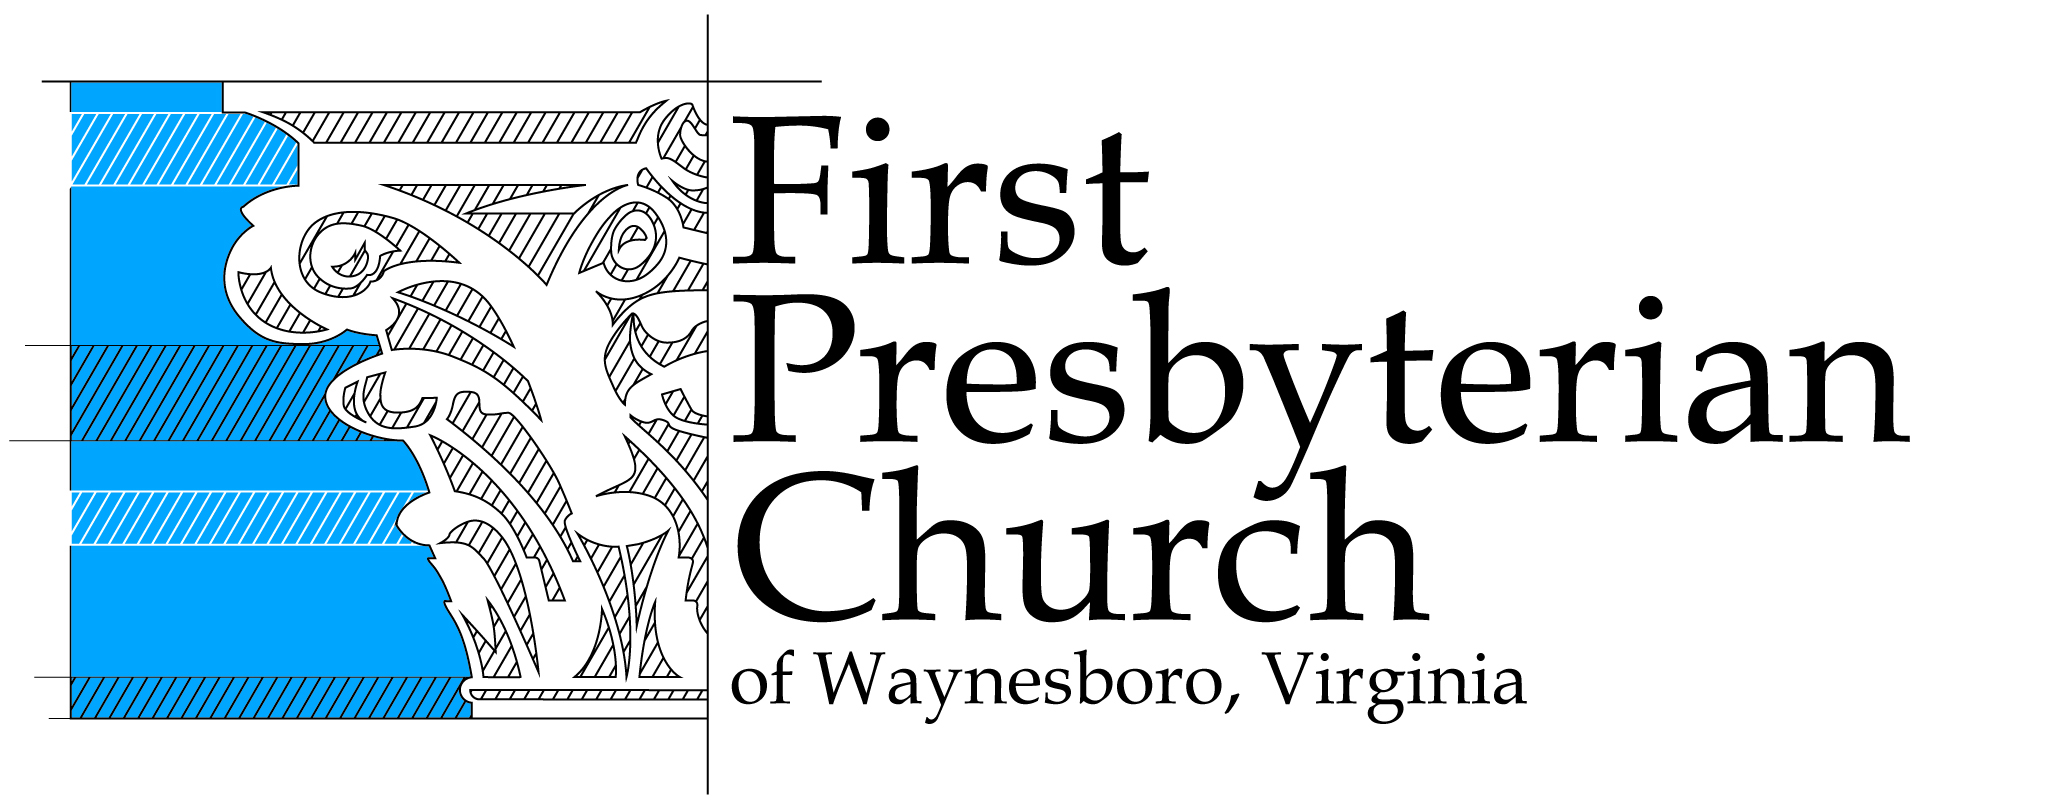 First Presbyterian Church-Waynesboro